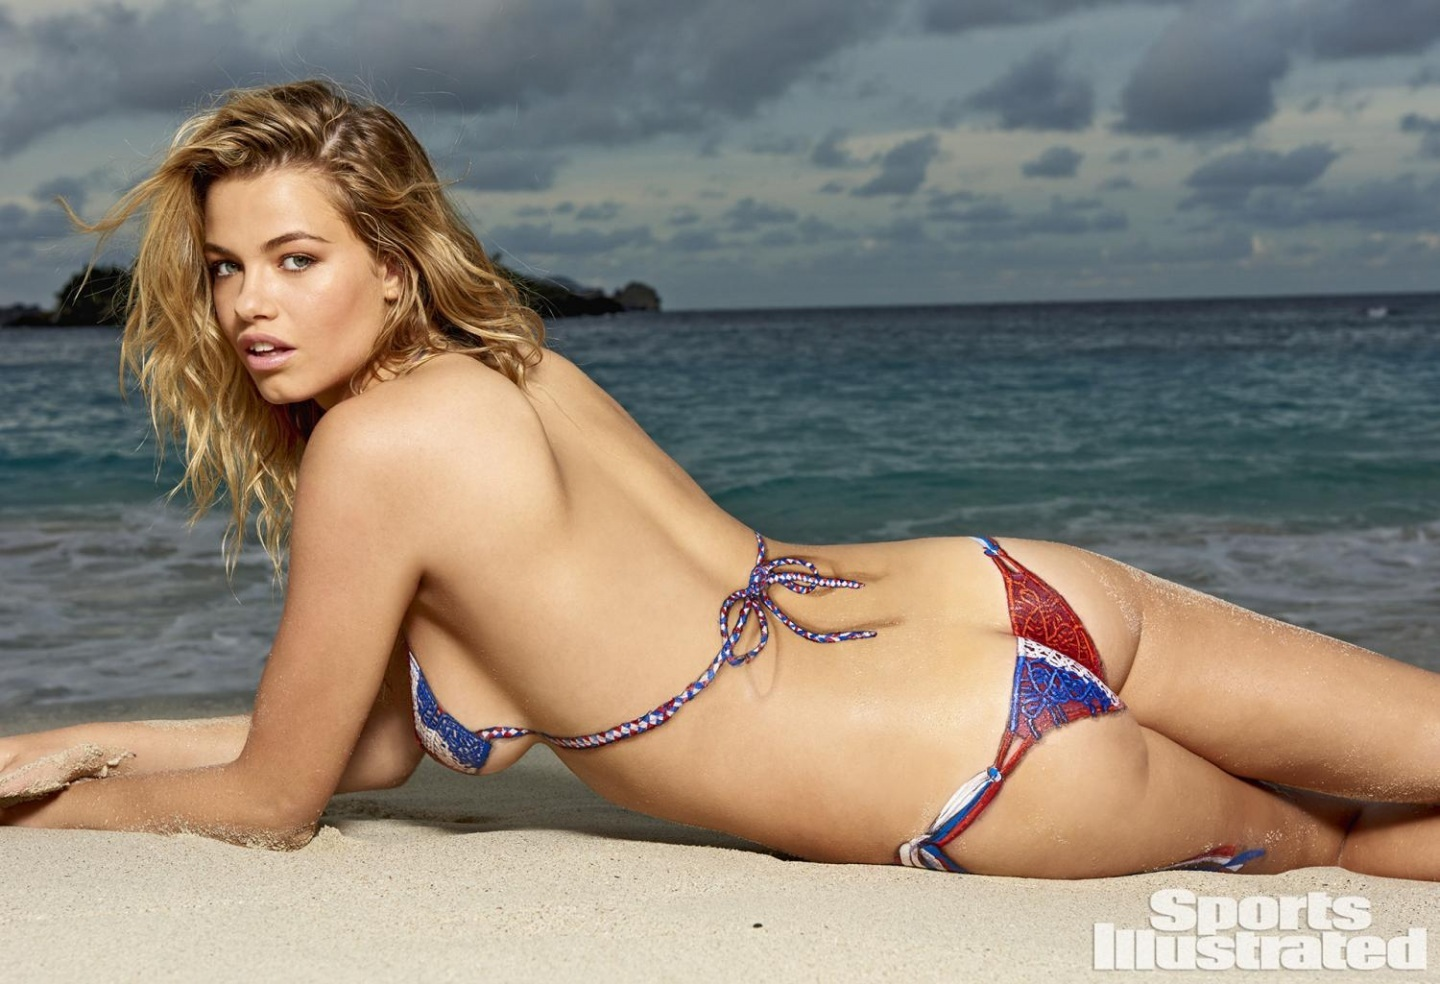 Hailey Clauson Bodypaint Sports Illustrated Itokvo Uahi Hailey Clauson